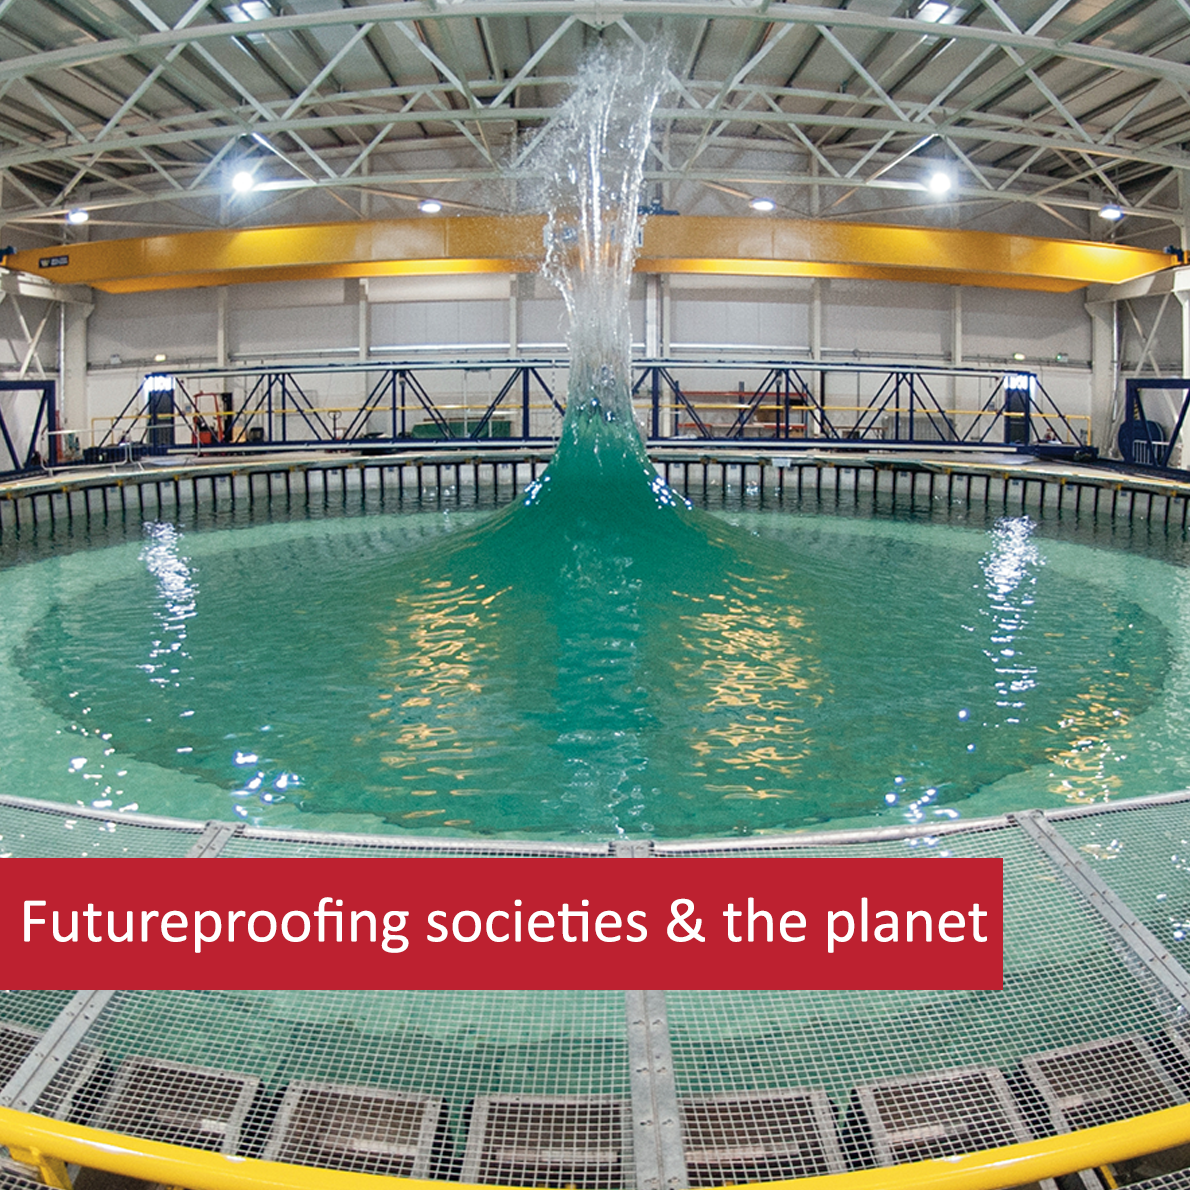 Futureproofing societies and the planet